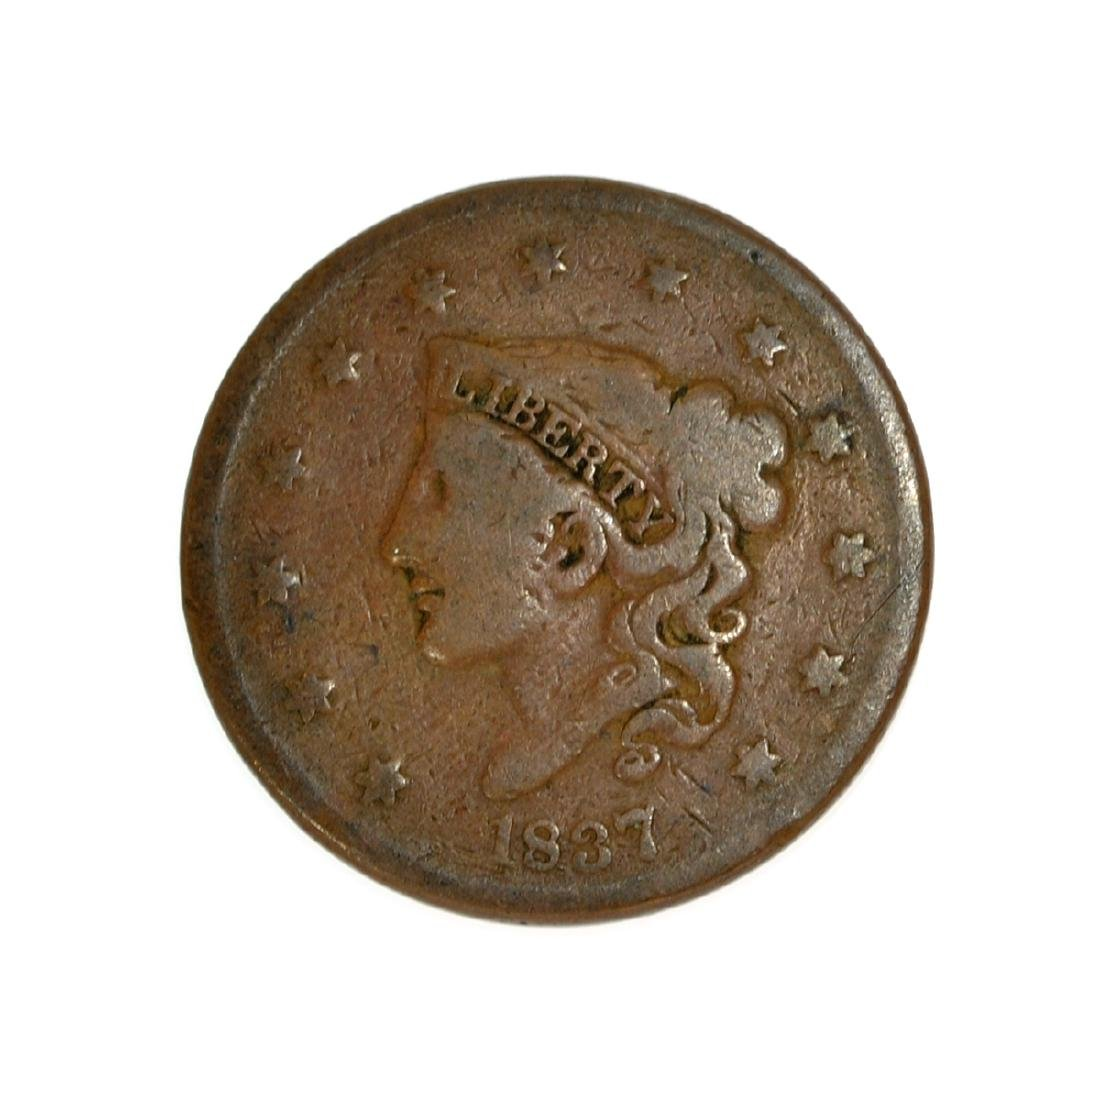 Rare 1837 Large Cent Coin